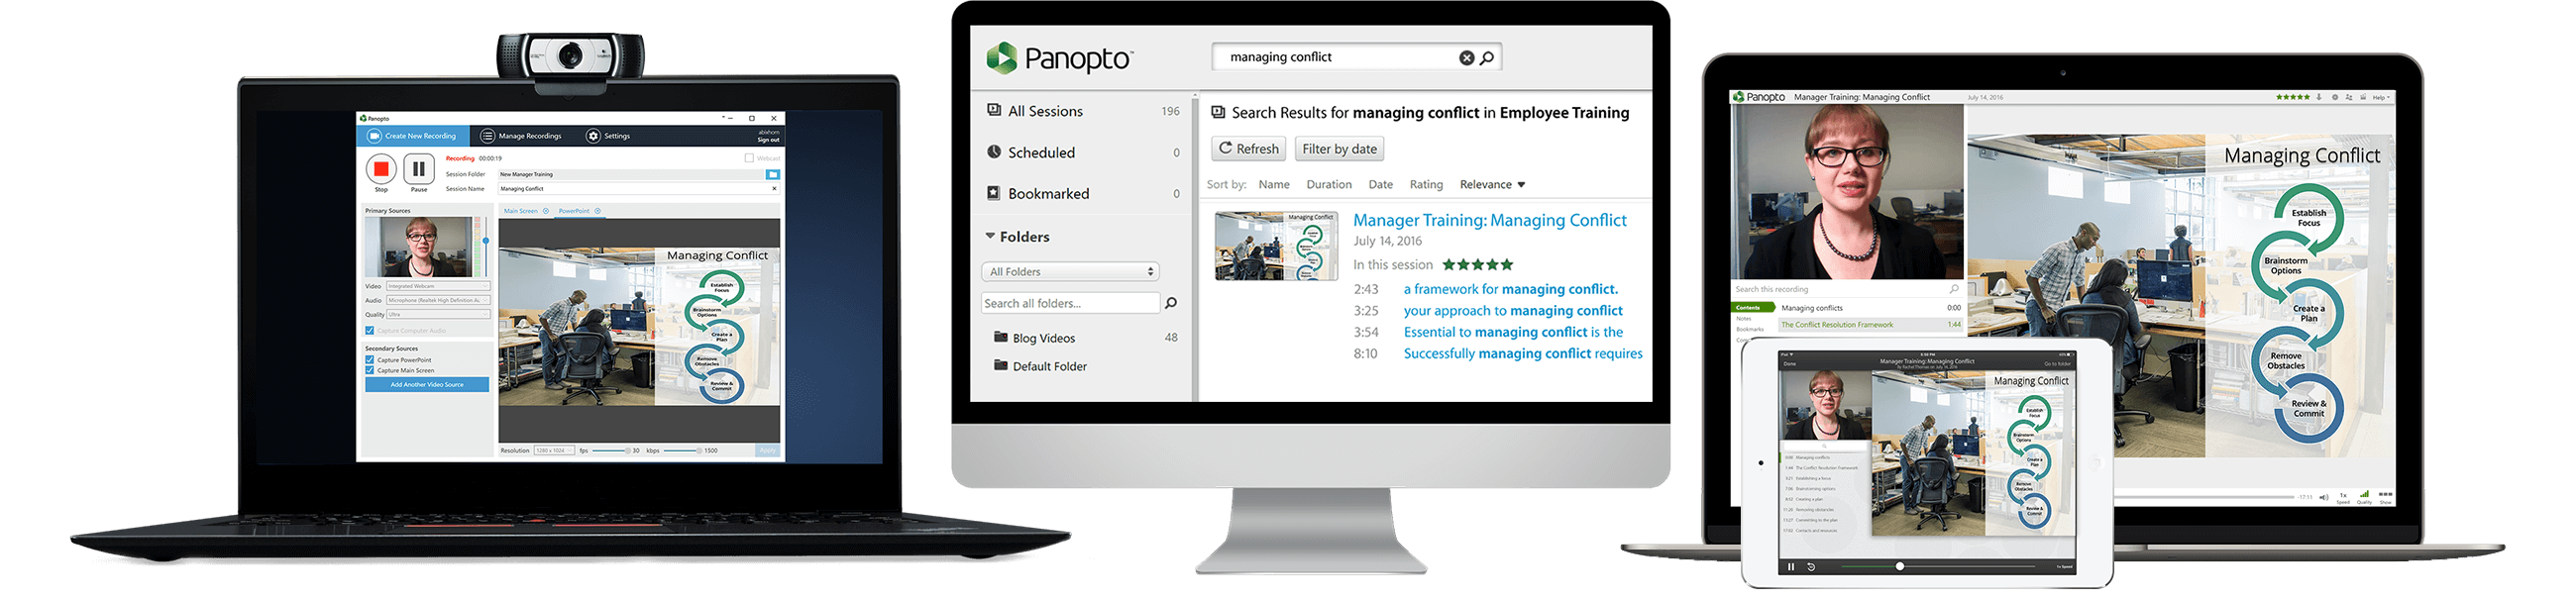 Panopto Features - An Video Platform for Business and Education